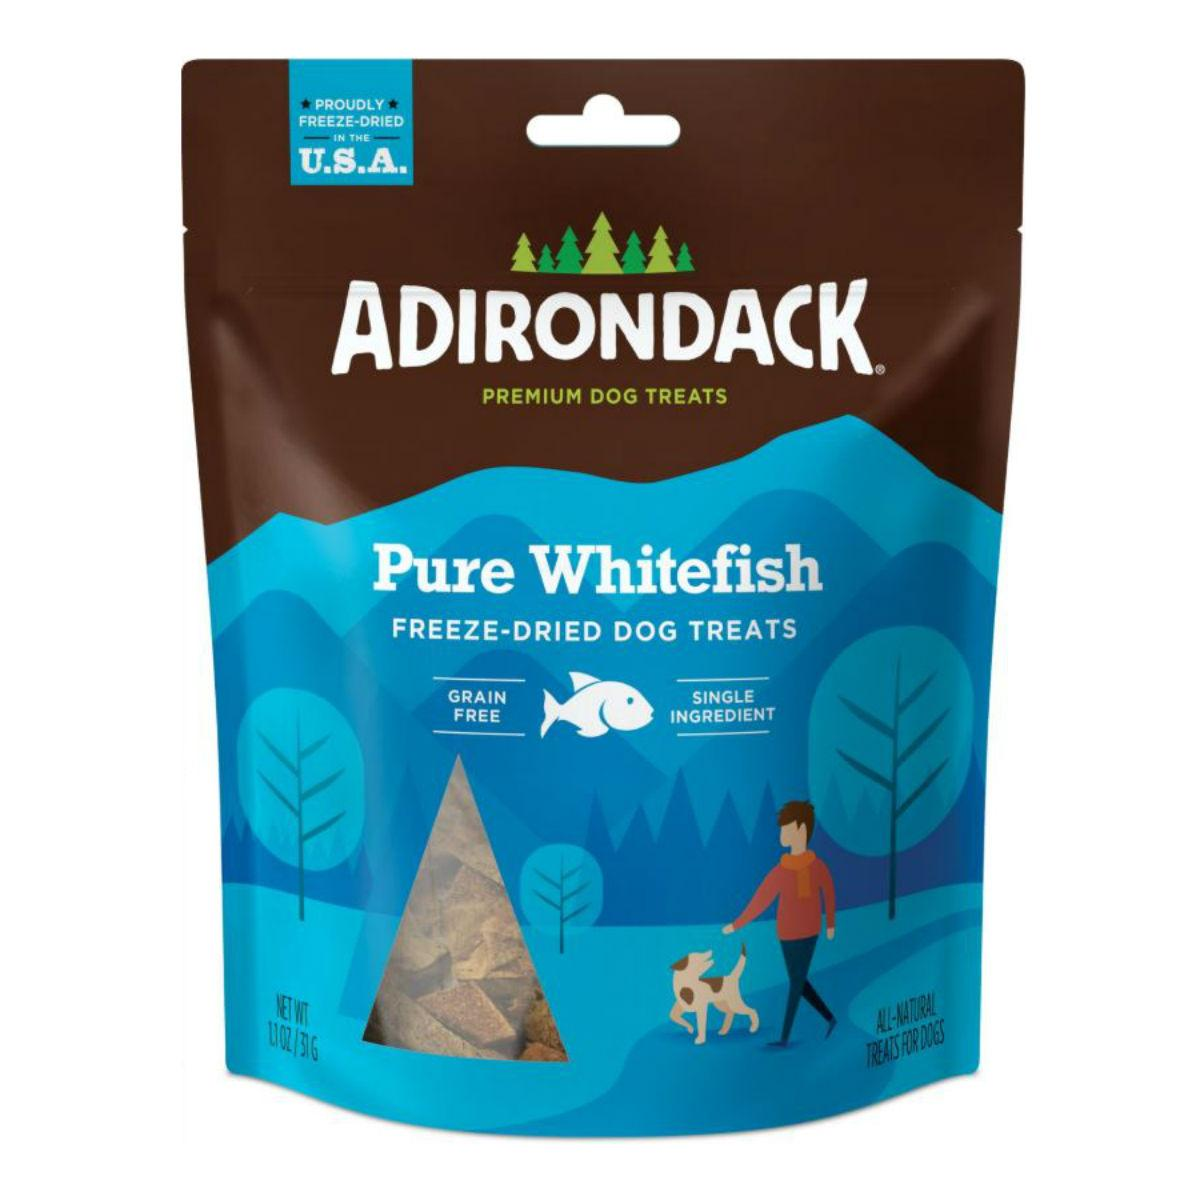 Adirondack Freeze-Dried Grain-Free Dog Treats - Pure Whitefish